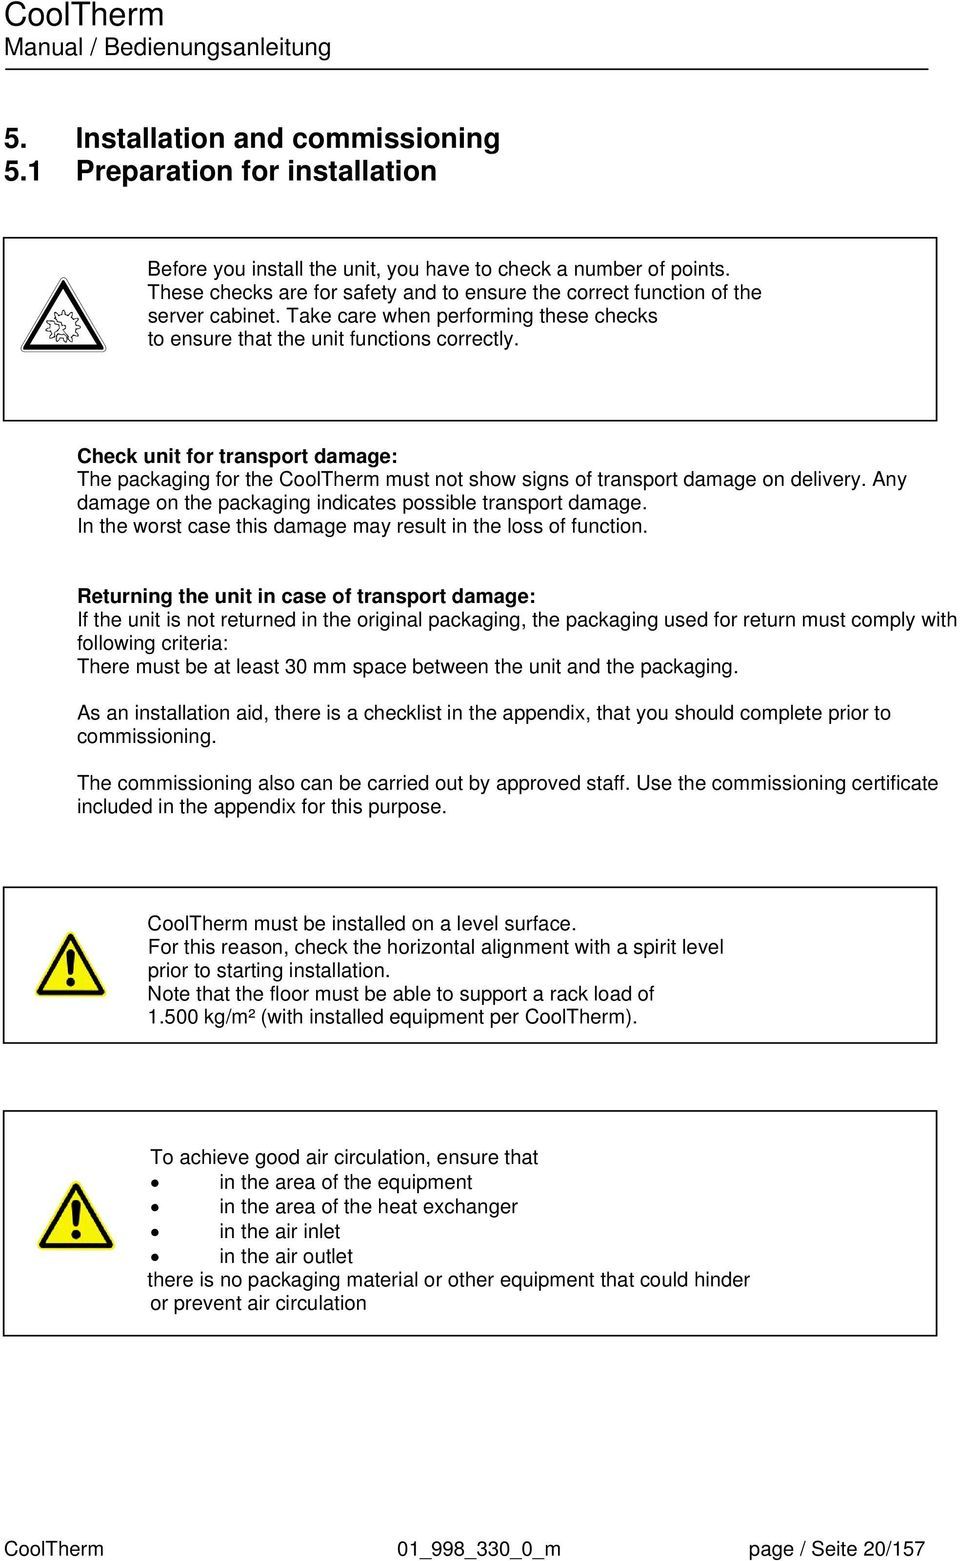 Check unit for transport damage: The packaging for the CoolTherm must not show signs of transport damage on delivery. Any damage on the packaging indicates possible transport damage.